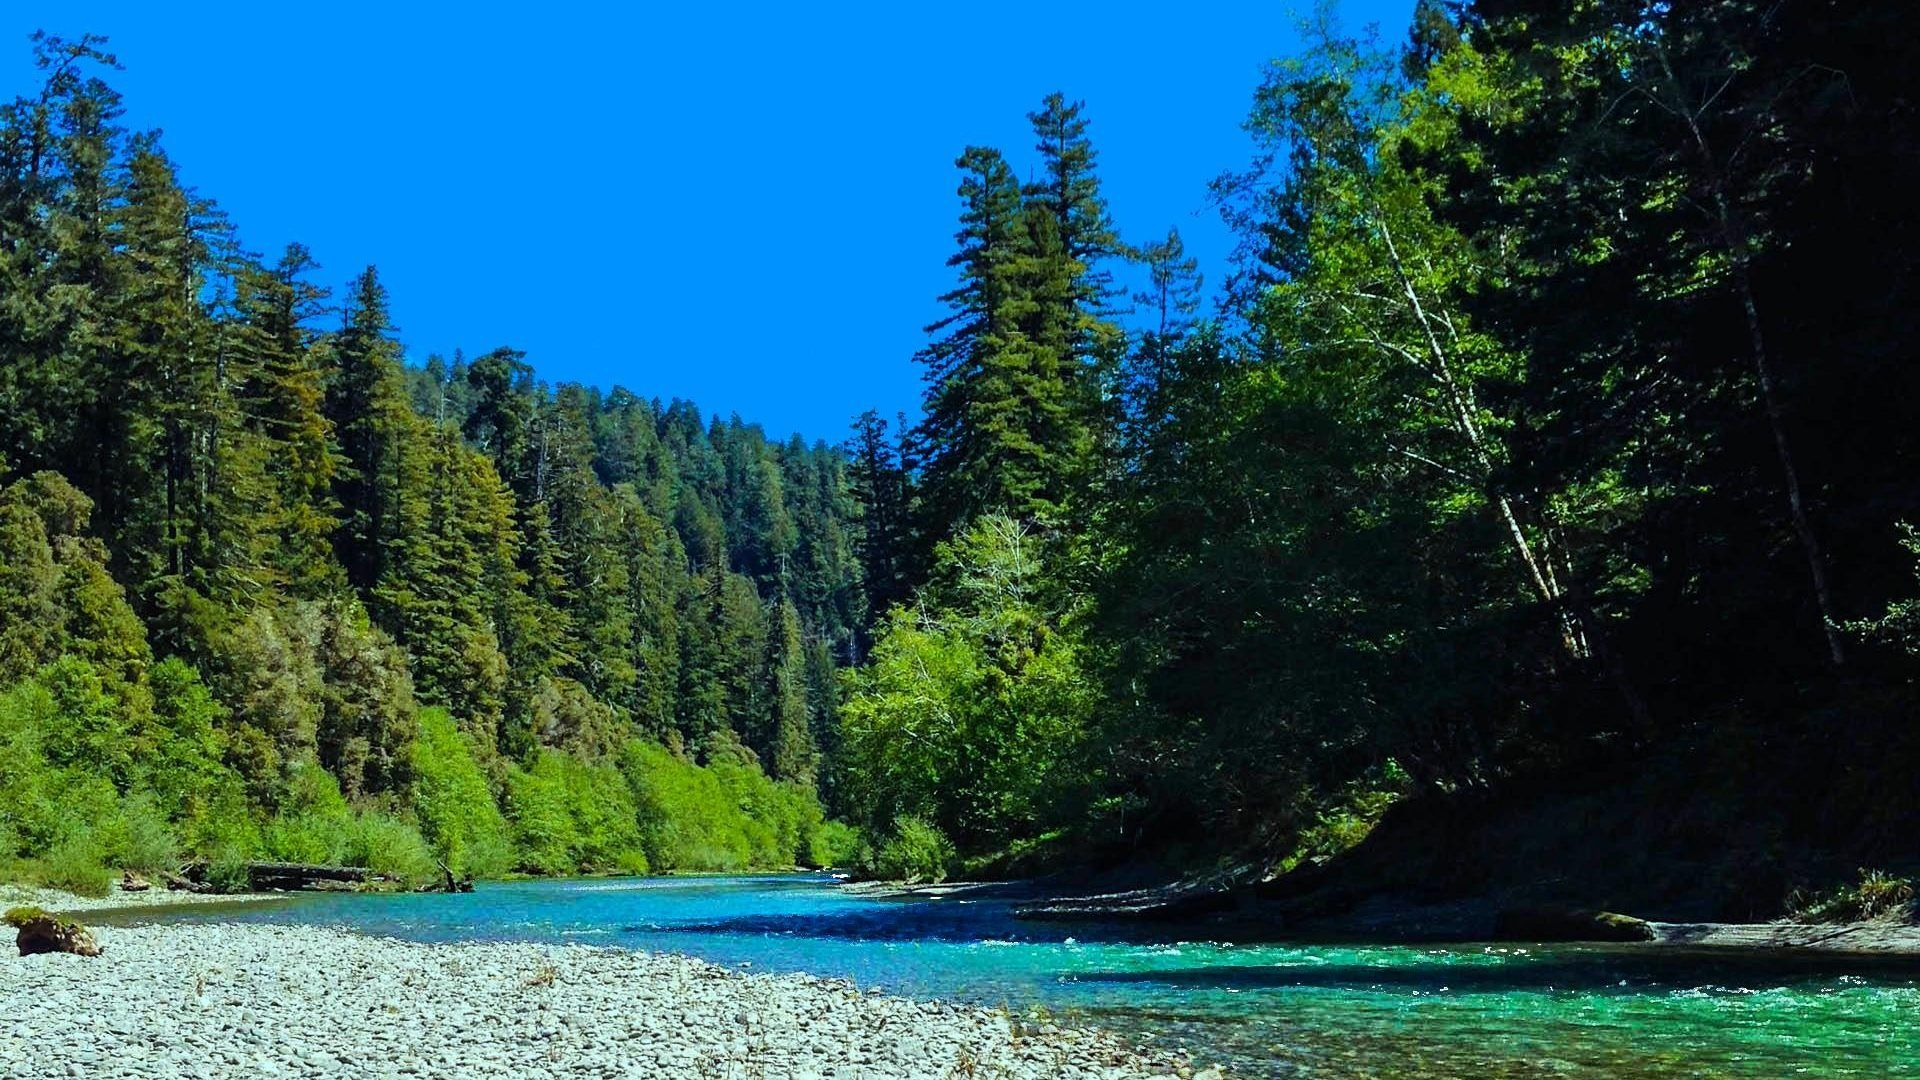 Redwood Forest Wallpapers - Top Free Redwood Forest ...